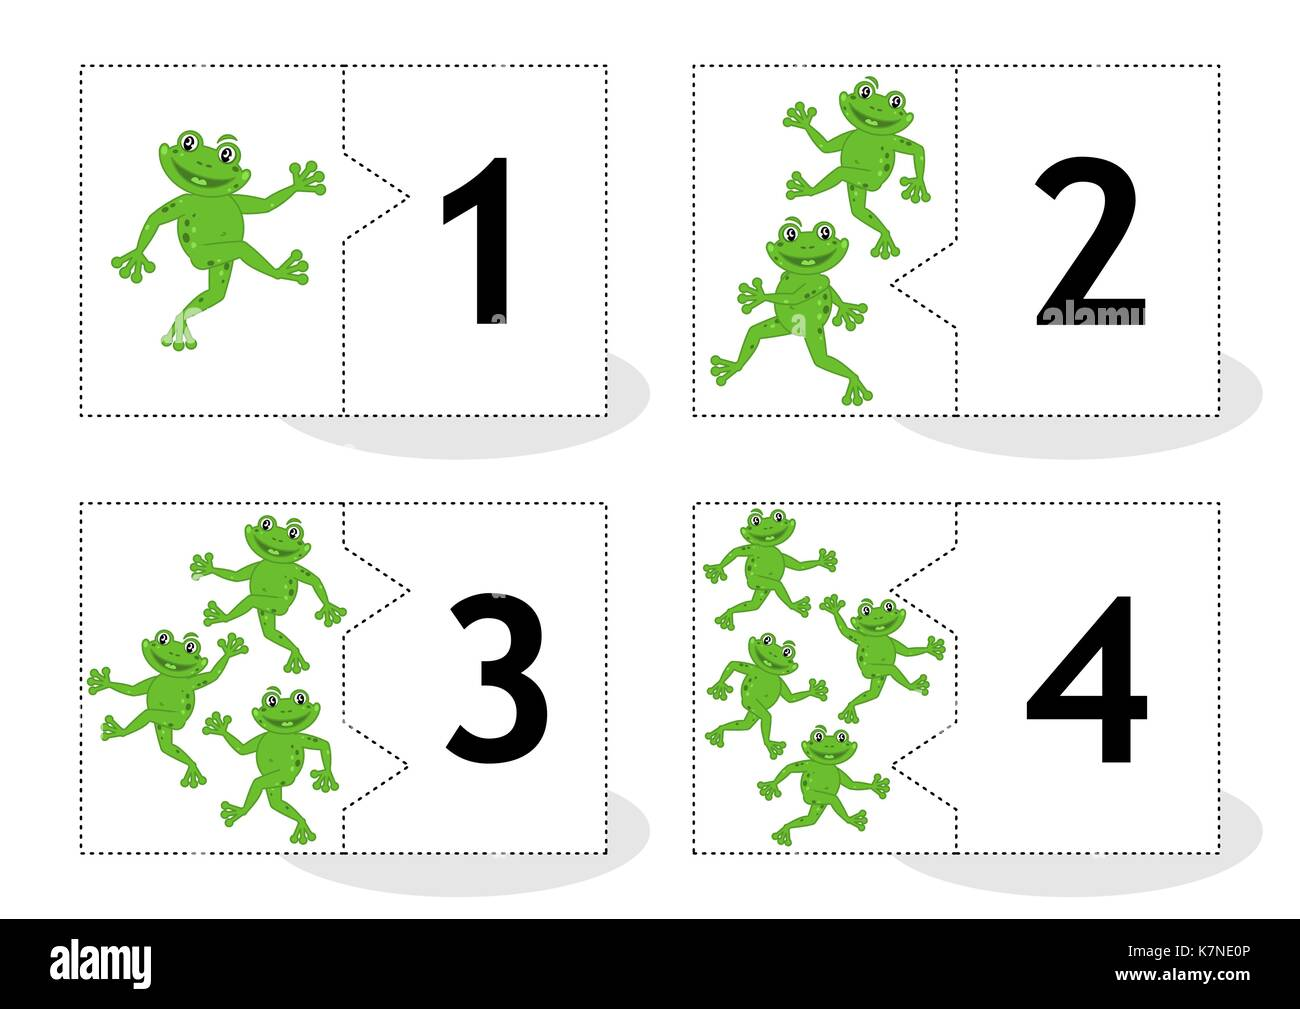 Learn counting 2-part puzzle cards to cut out and play, frogs themed, numbers 1 - 4 - Stock Image